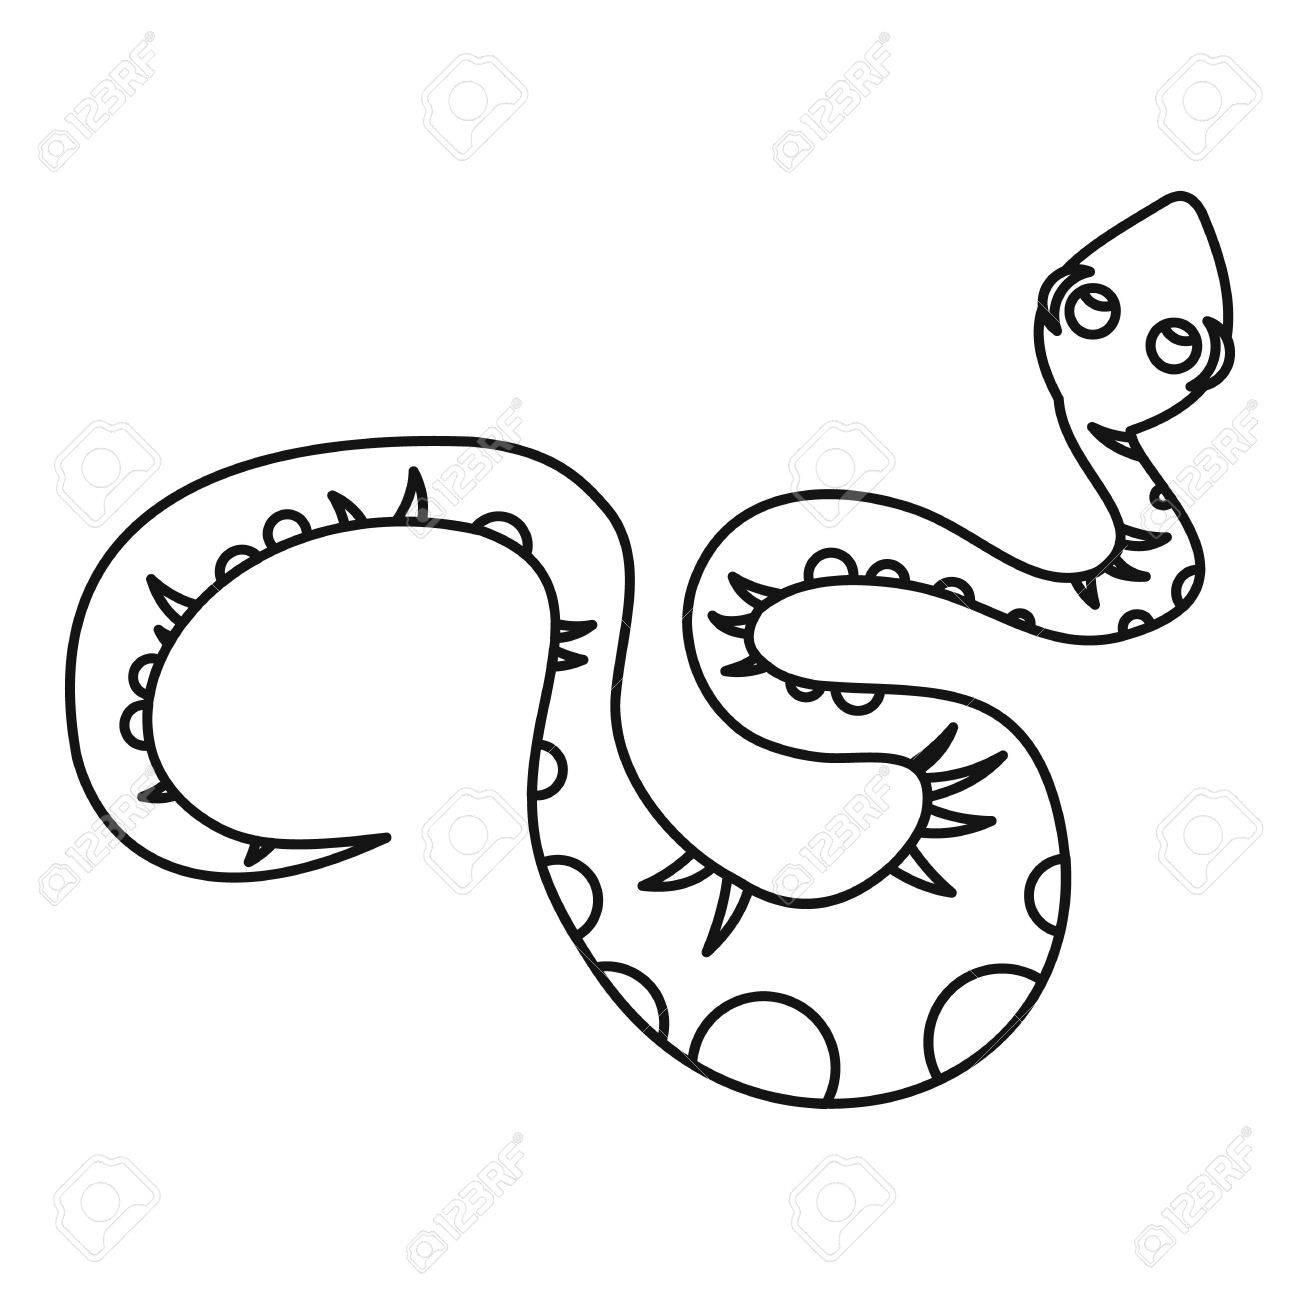 Black snake icon in outline style isolated on white background...